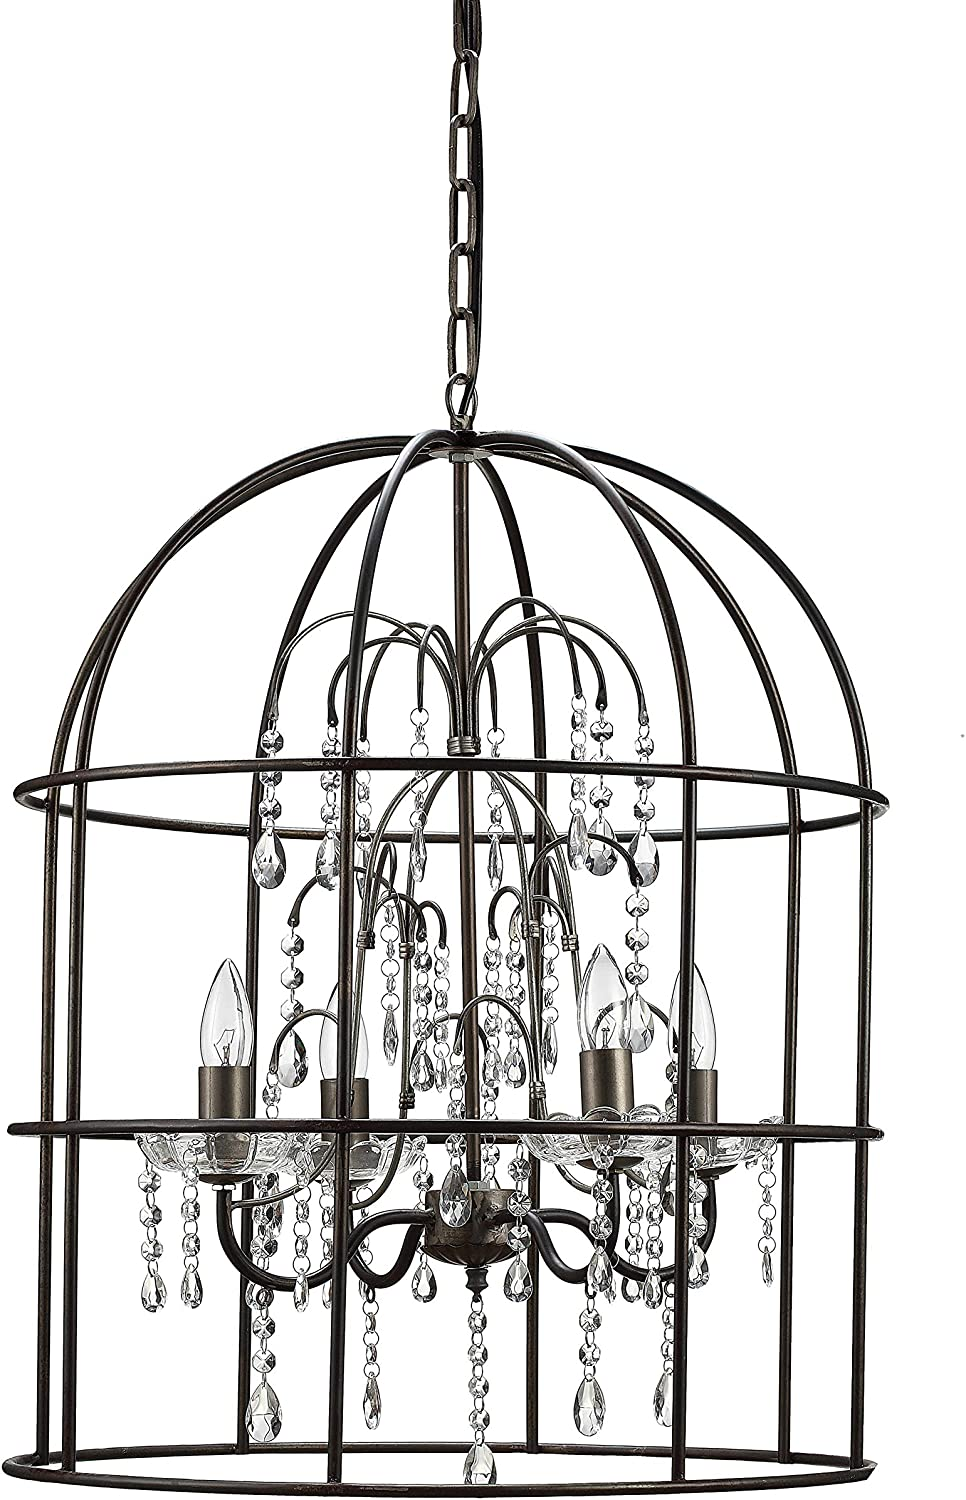 Atlanta Mall Max 71% OFF Creative Co-Op Black Metal Birdcage 4 with Chandelier andCrystal